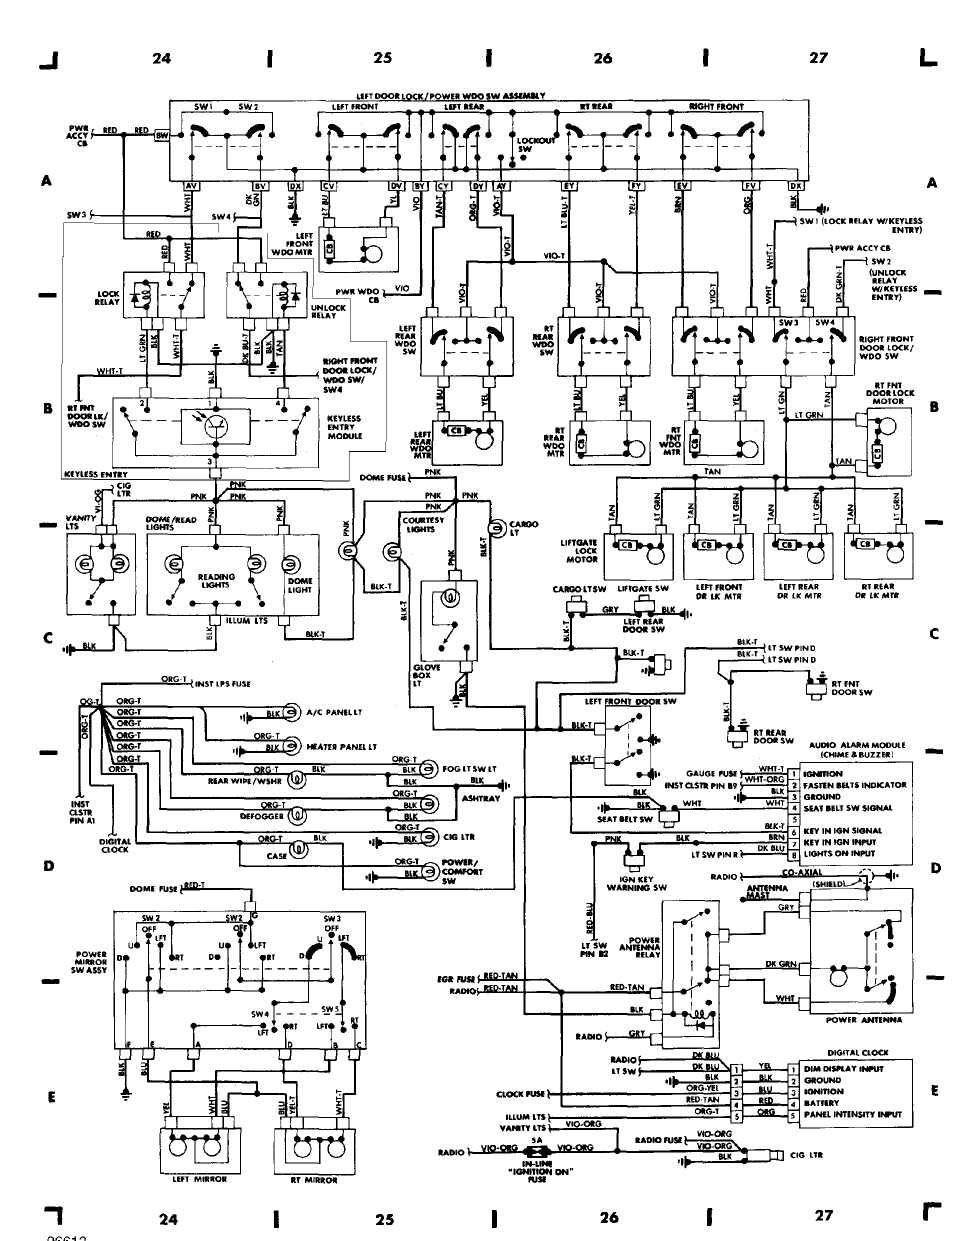 wiring_diagrams_html_61f5e0ad wiring diagrams 1984 1991 jeep cherokee (xj) jeep 89 jeep cherokee wiring diagram at reclaimingppi.co